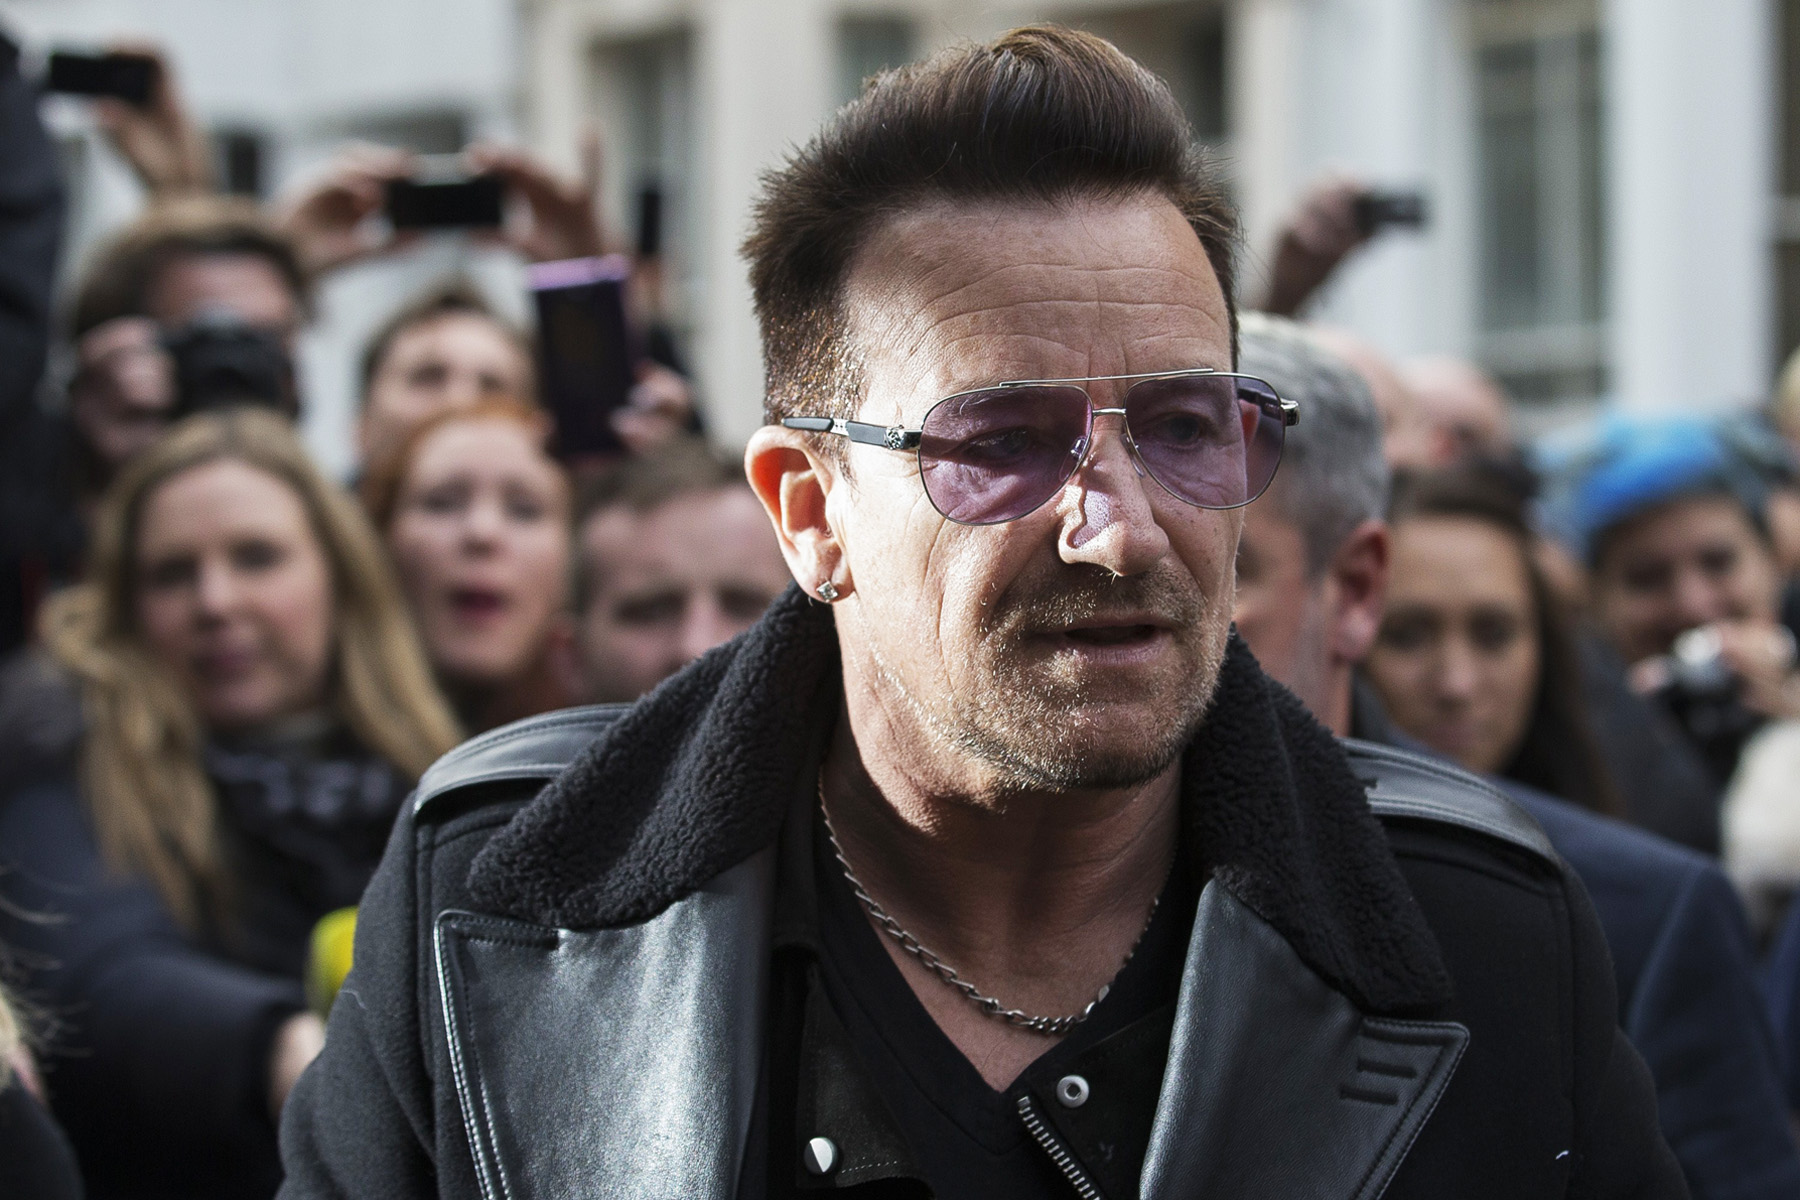 Full extent of Bono's bike accident injuries revealed